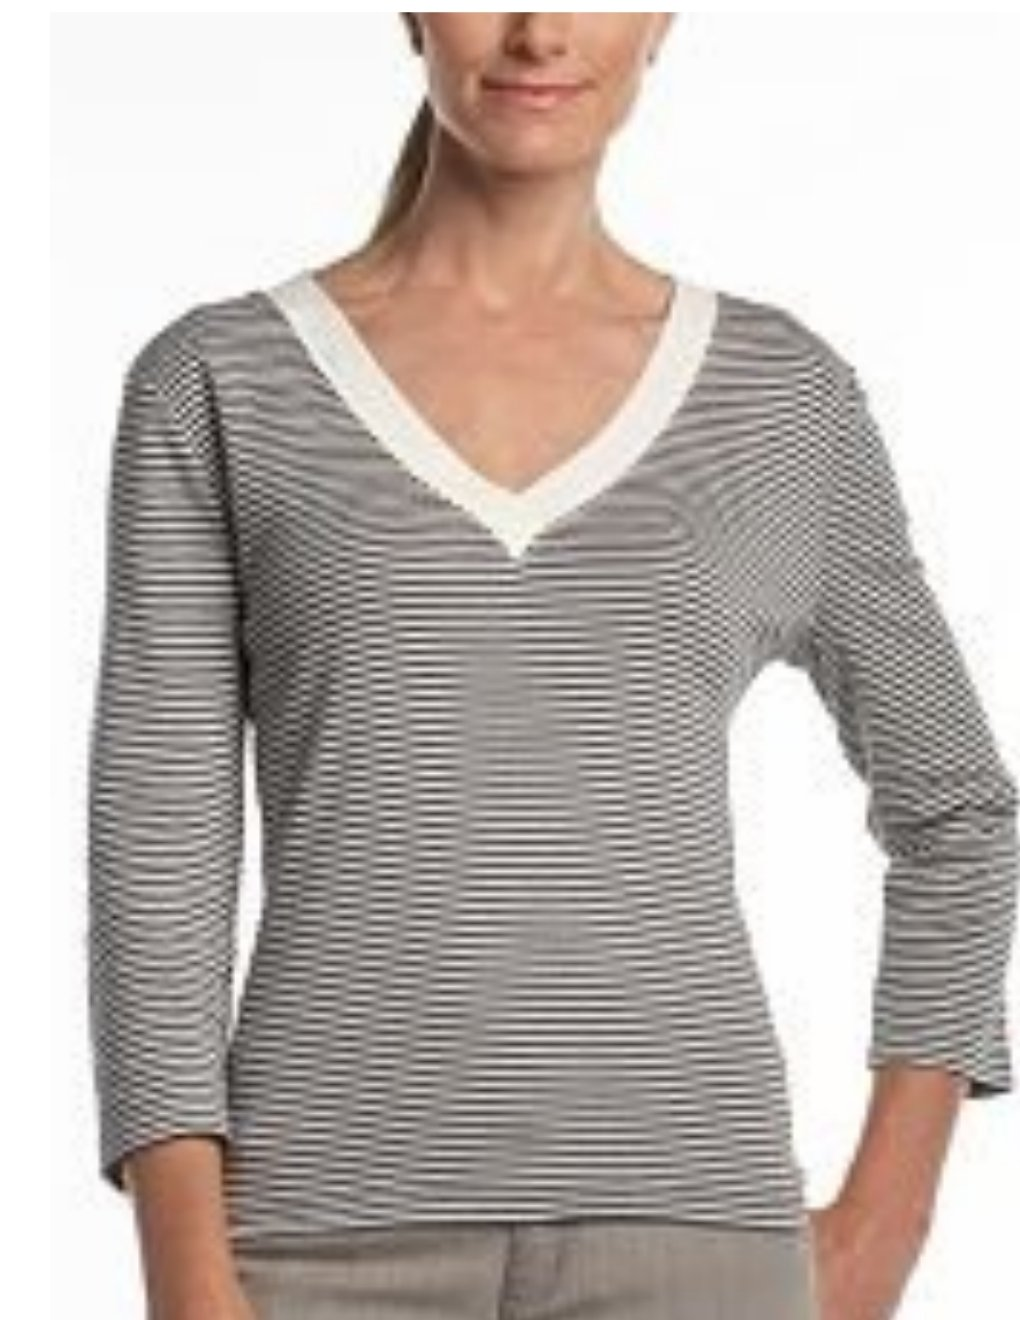 Chaps Womens Striped Top or Shirt V Neck Size Large Cream and GRAY with TAGS